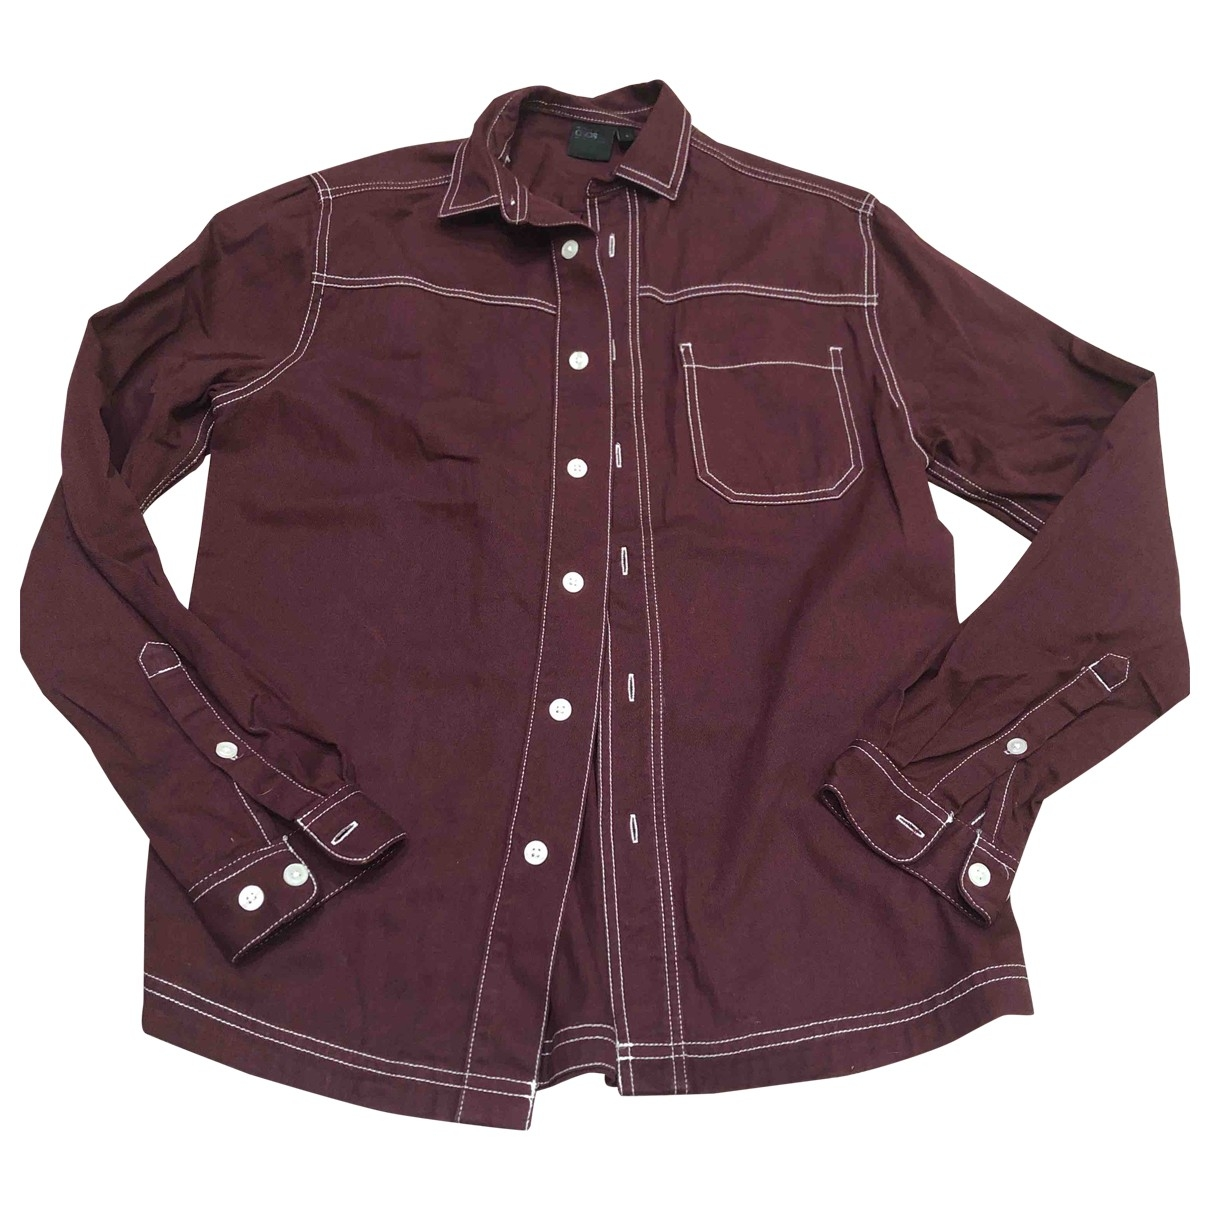 Asos \N Burgundy Shirts for Men S International